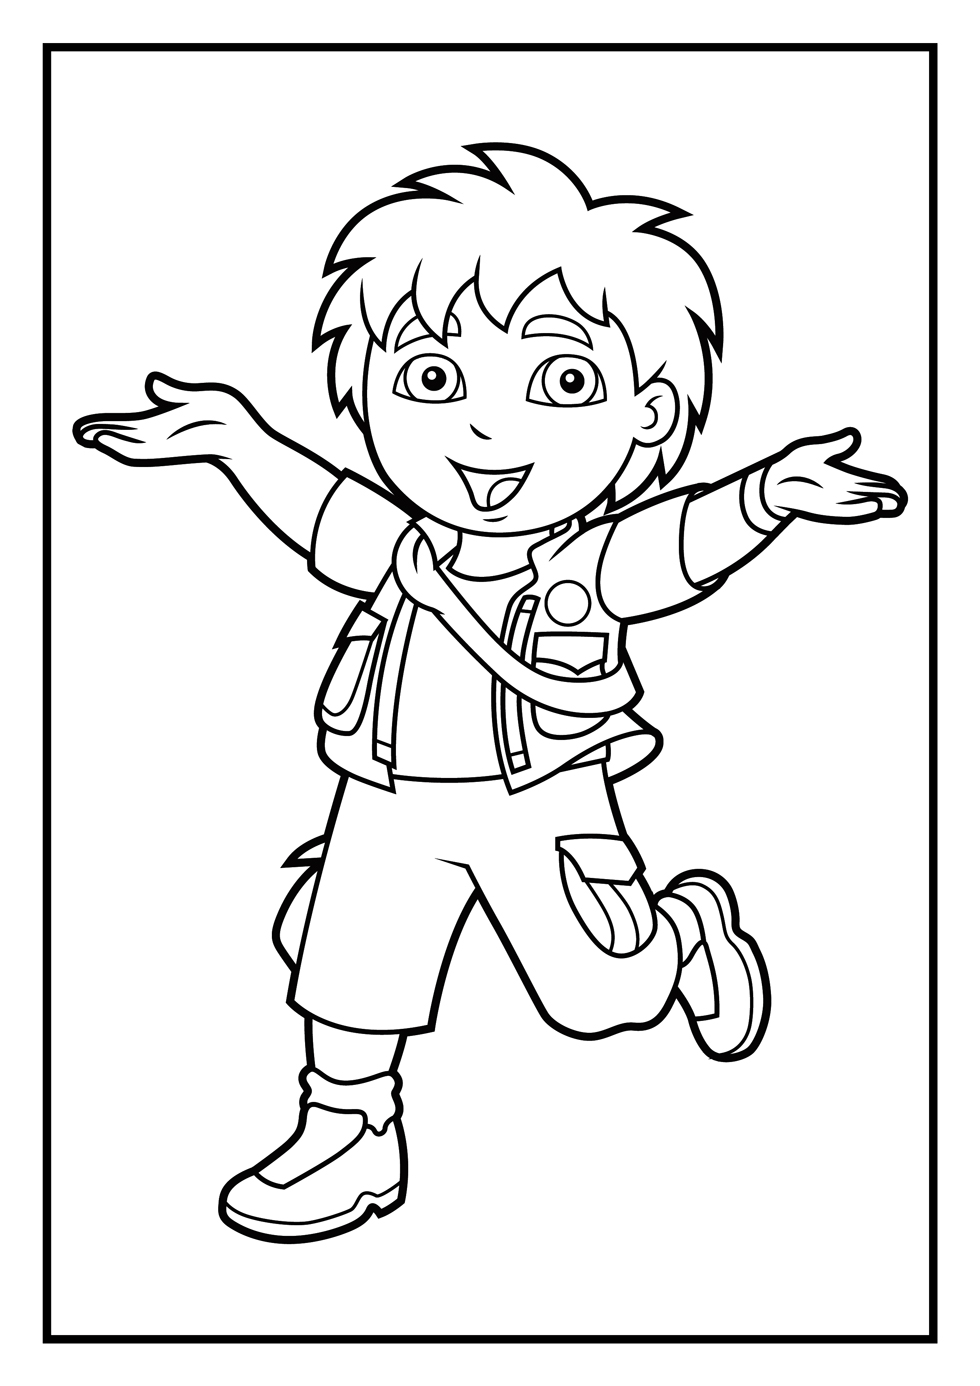 14 diego coloring page to print print color craft Coloring book to print